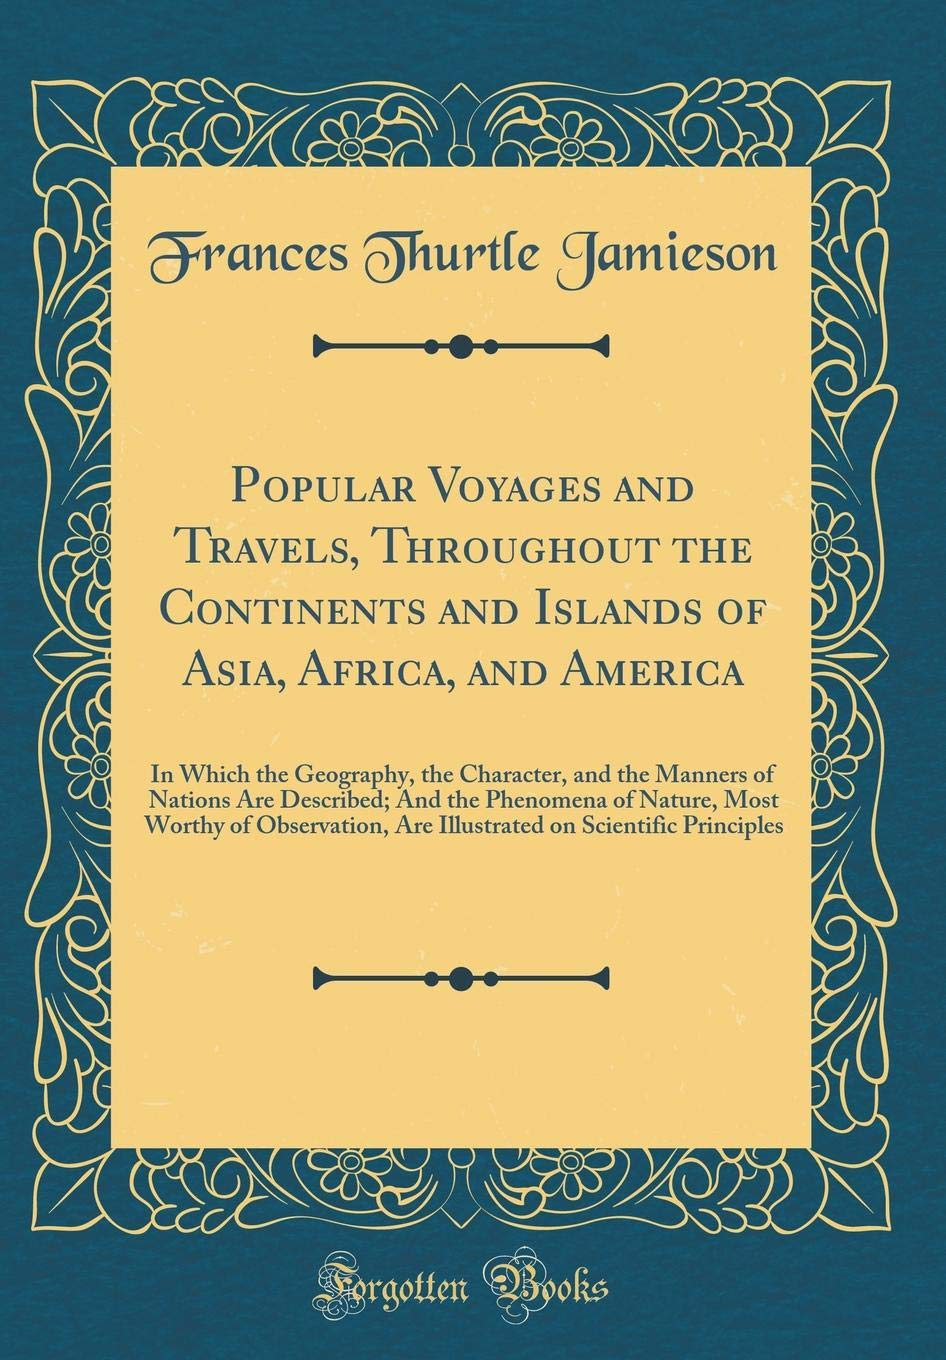 Read Online Popular Voyages and Travels, Throughout the Continents and Islands of Asia, Africa, and America: In Which the Geography, the Character, and the ... Worthy of Observation, Are Illustrated on S pdf epub